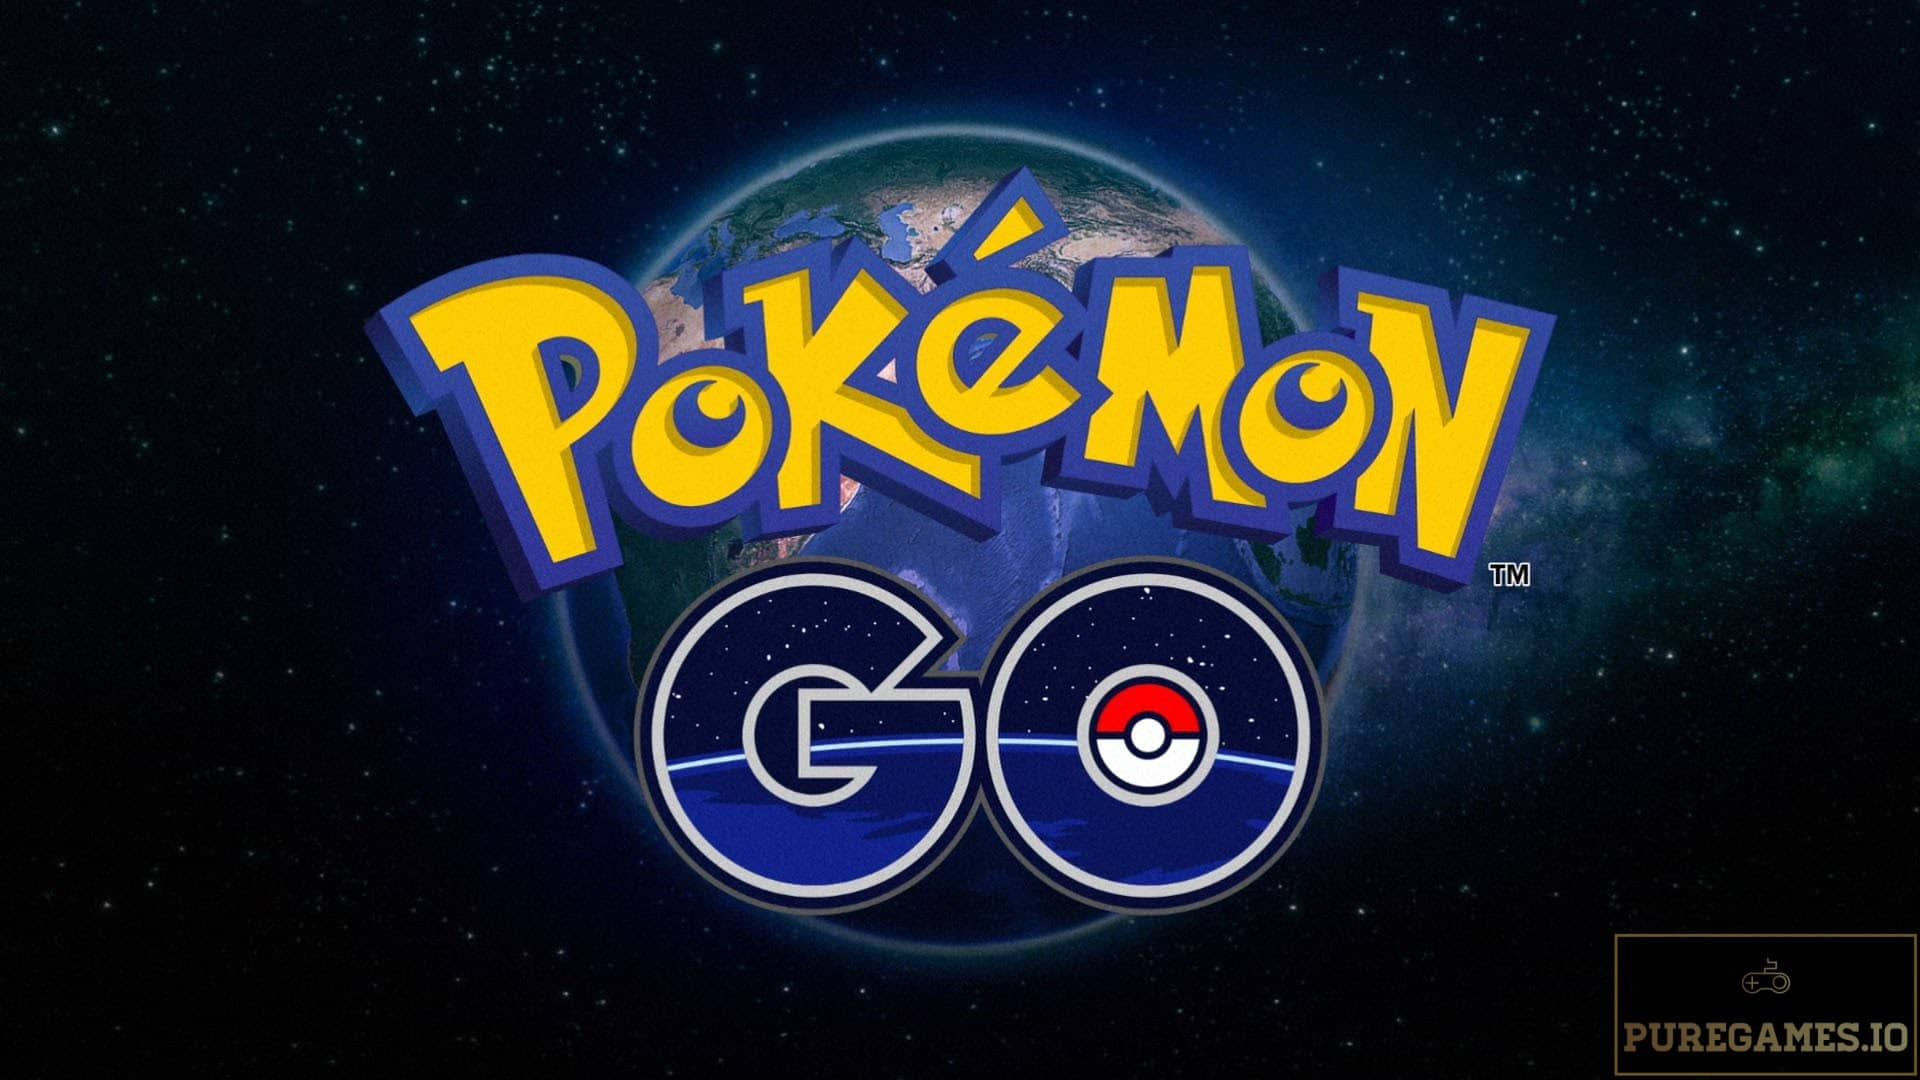 Download Pokémon Go APK – For Android/iOS 16